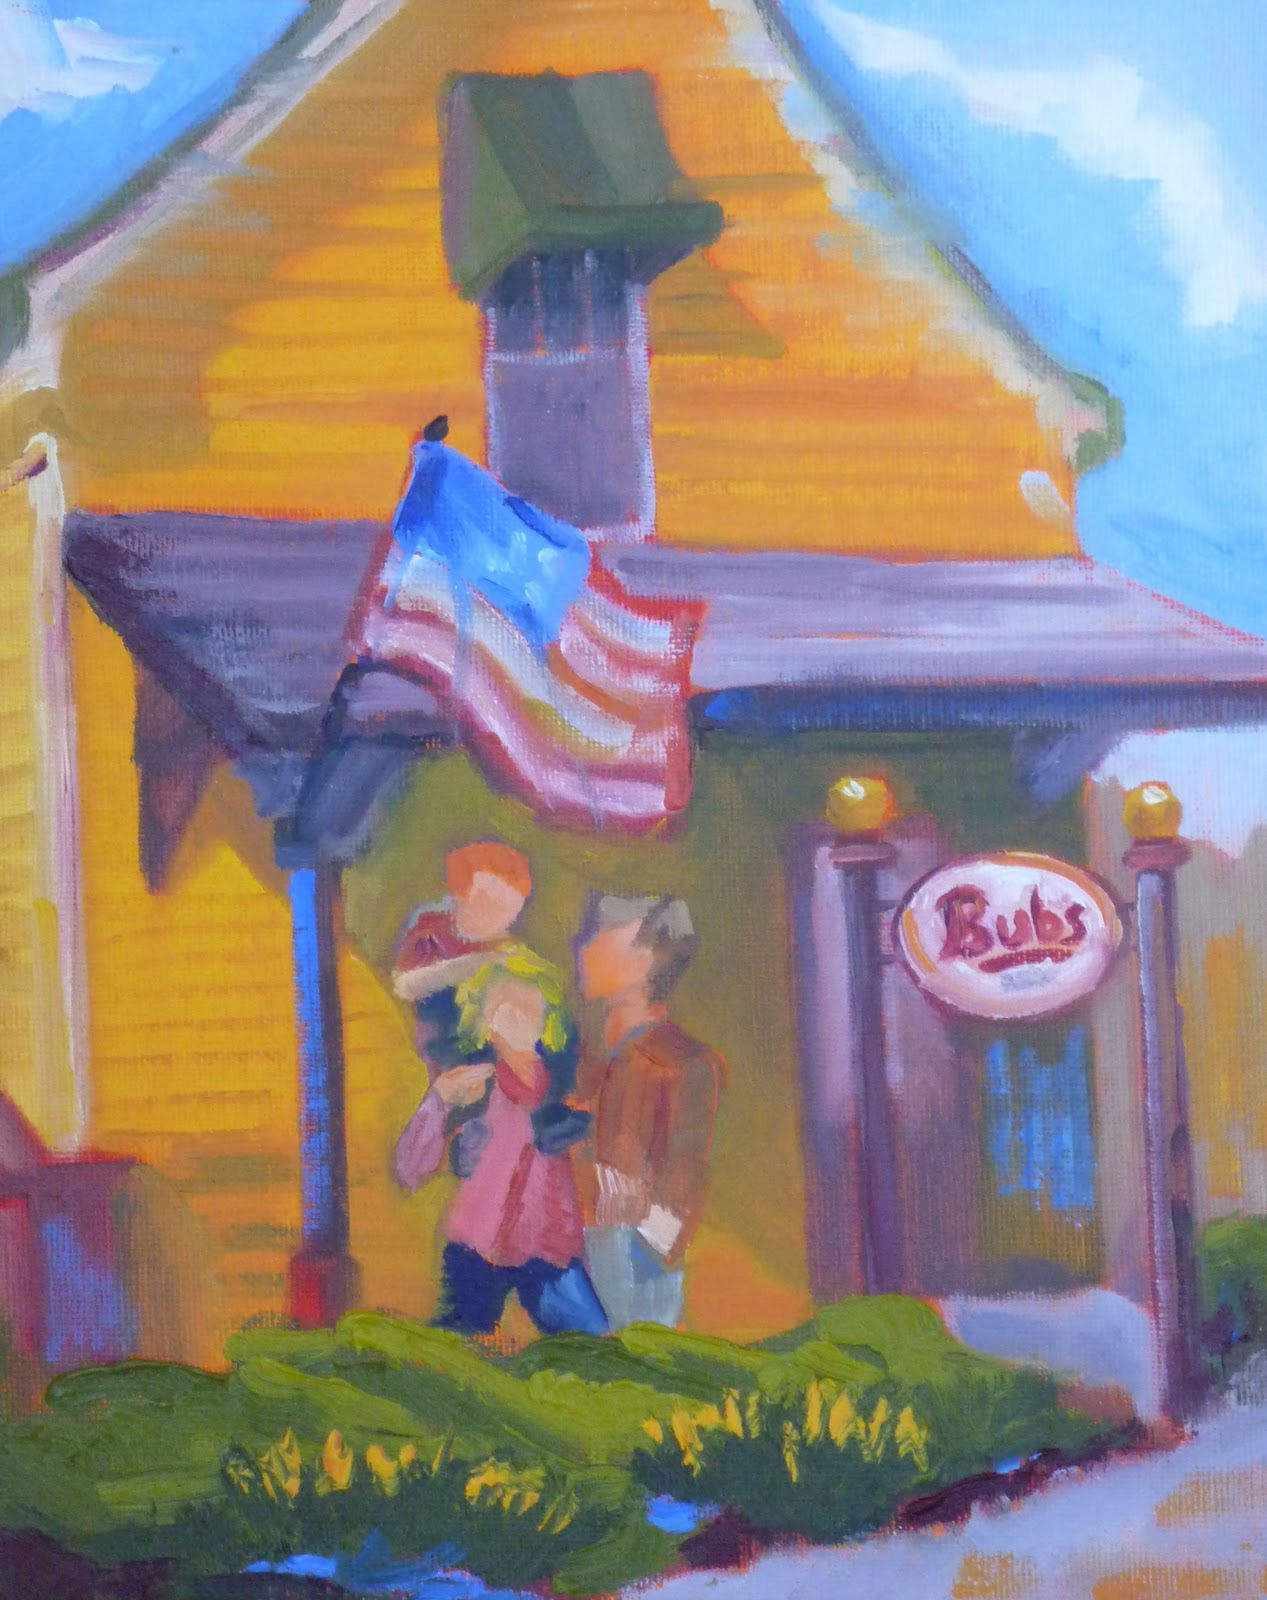 """Bub's Burgers"" original fine art by Shawn Deitch"